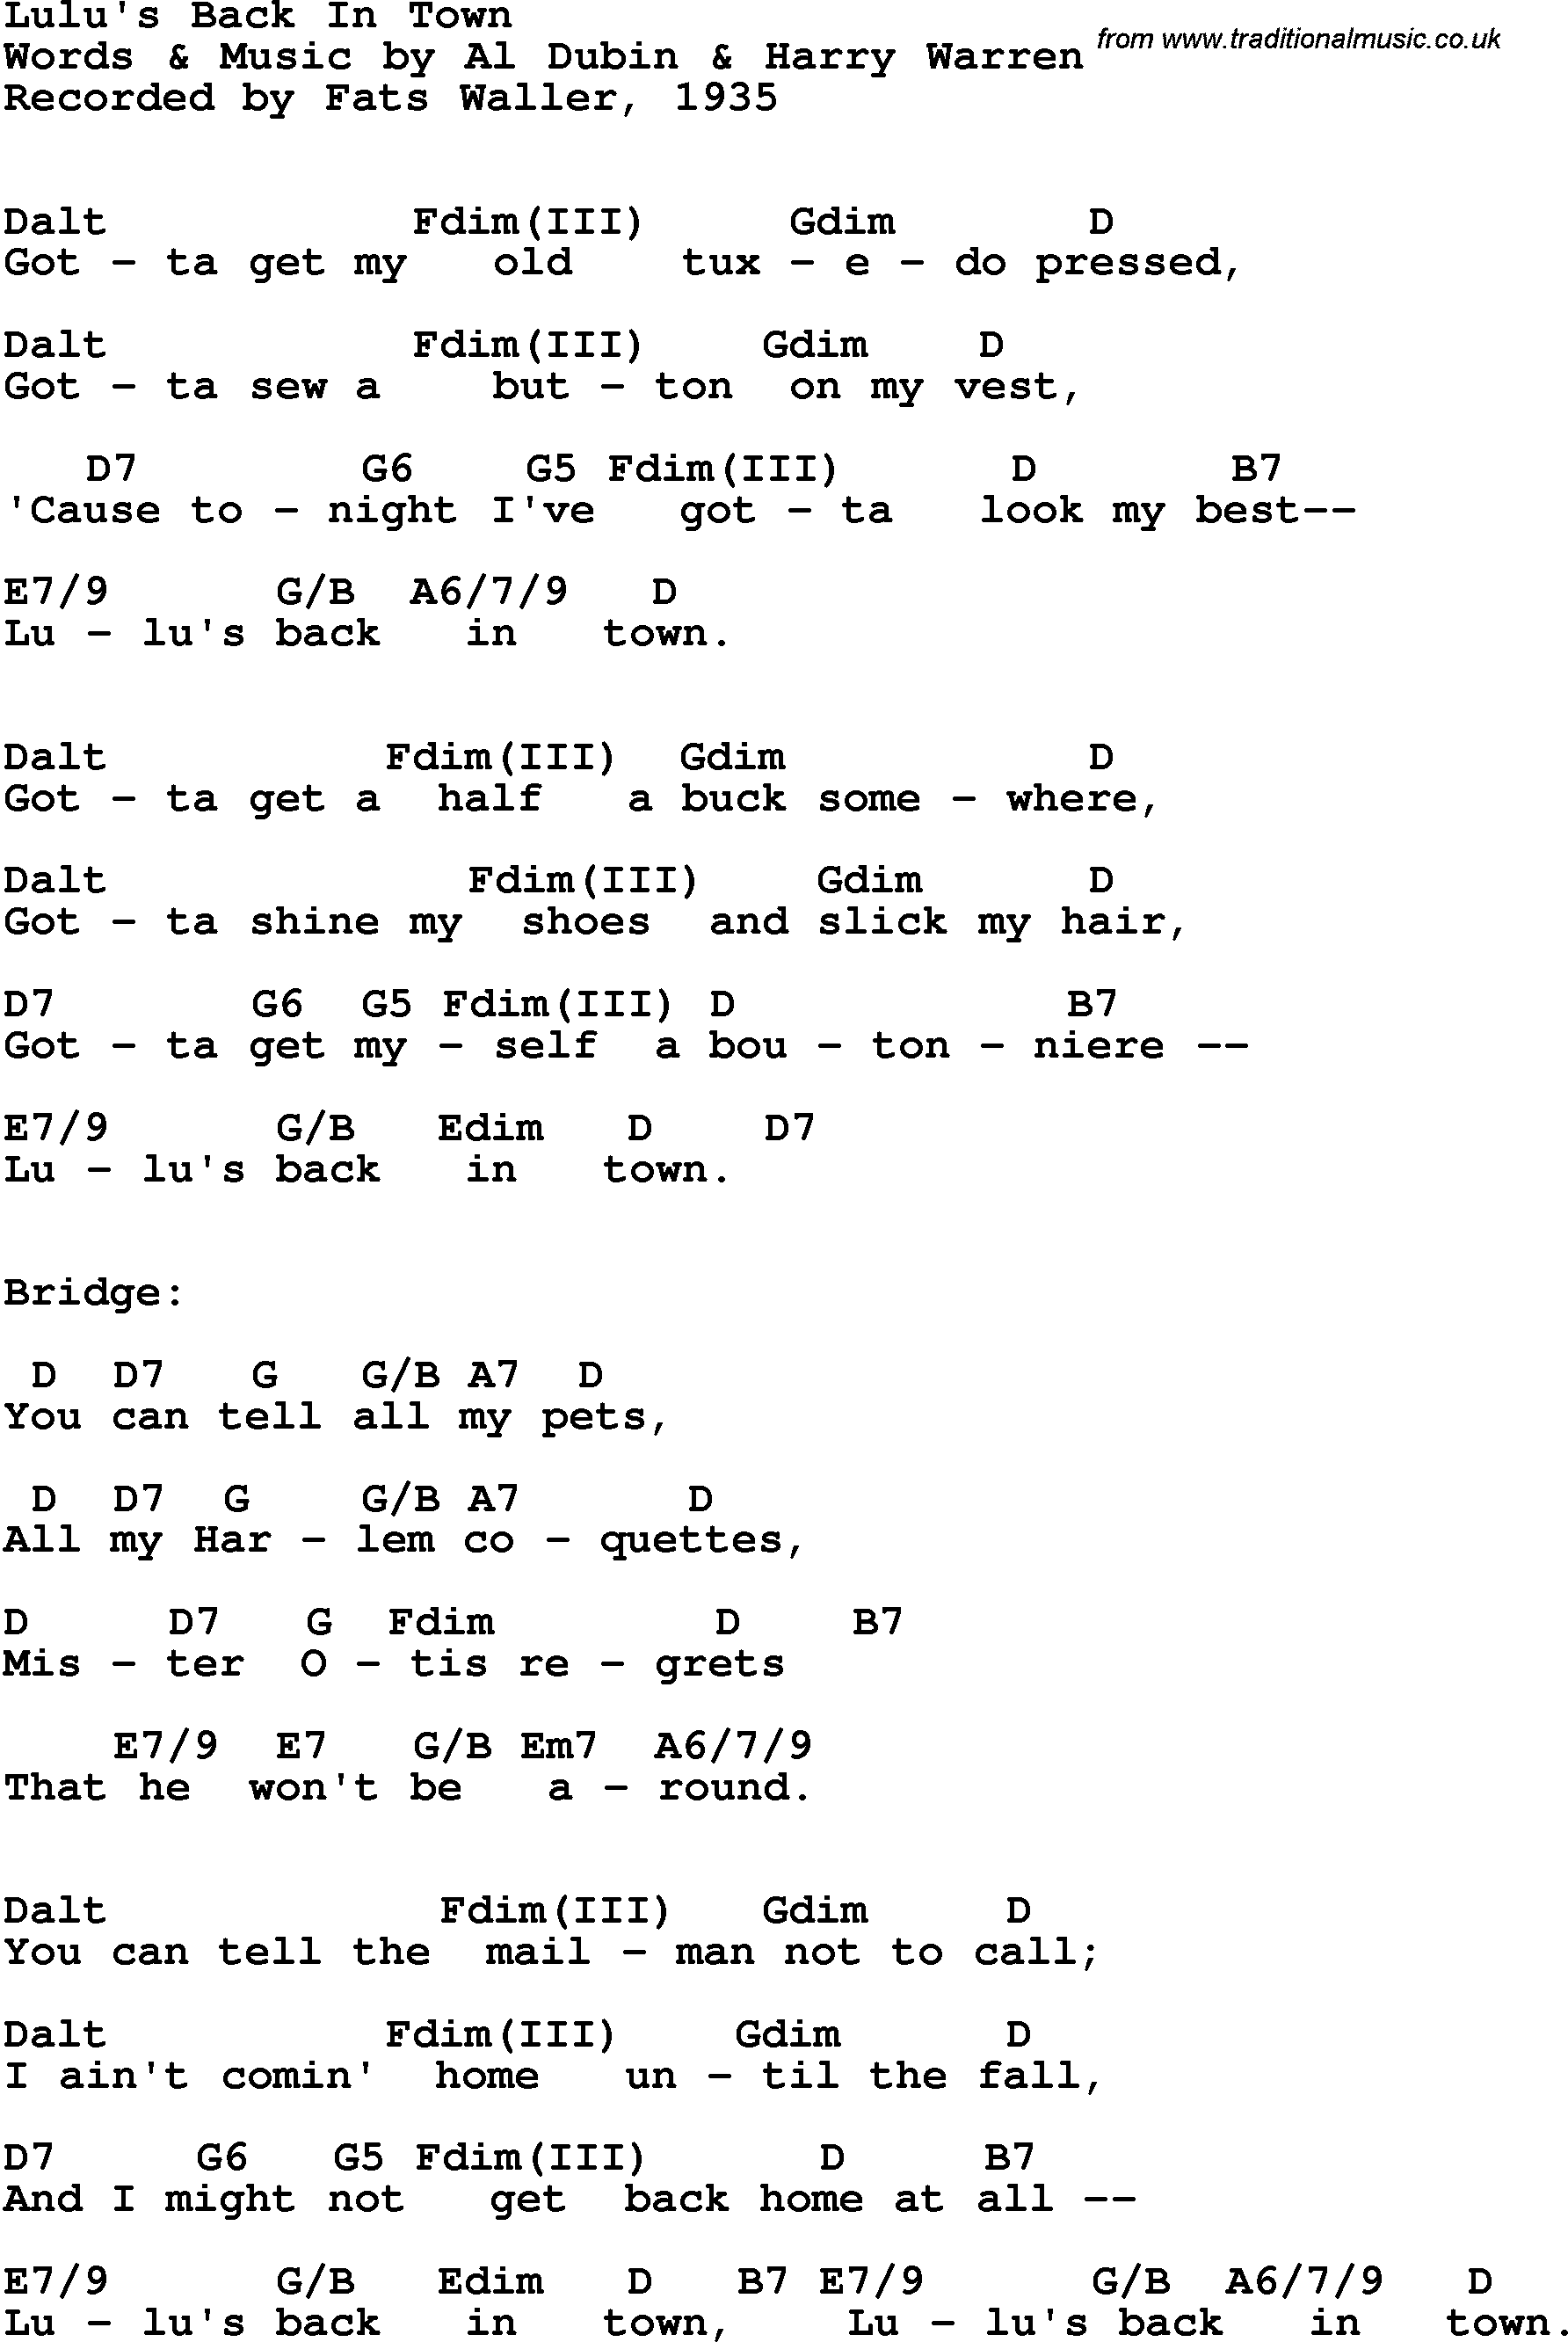 Song lyrics with guitar chords for lulus back in town fats song lyrics with guitar chords for lulus back in town fats waller 1935 hexwebz Choice Image